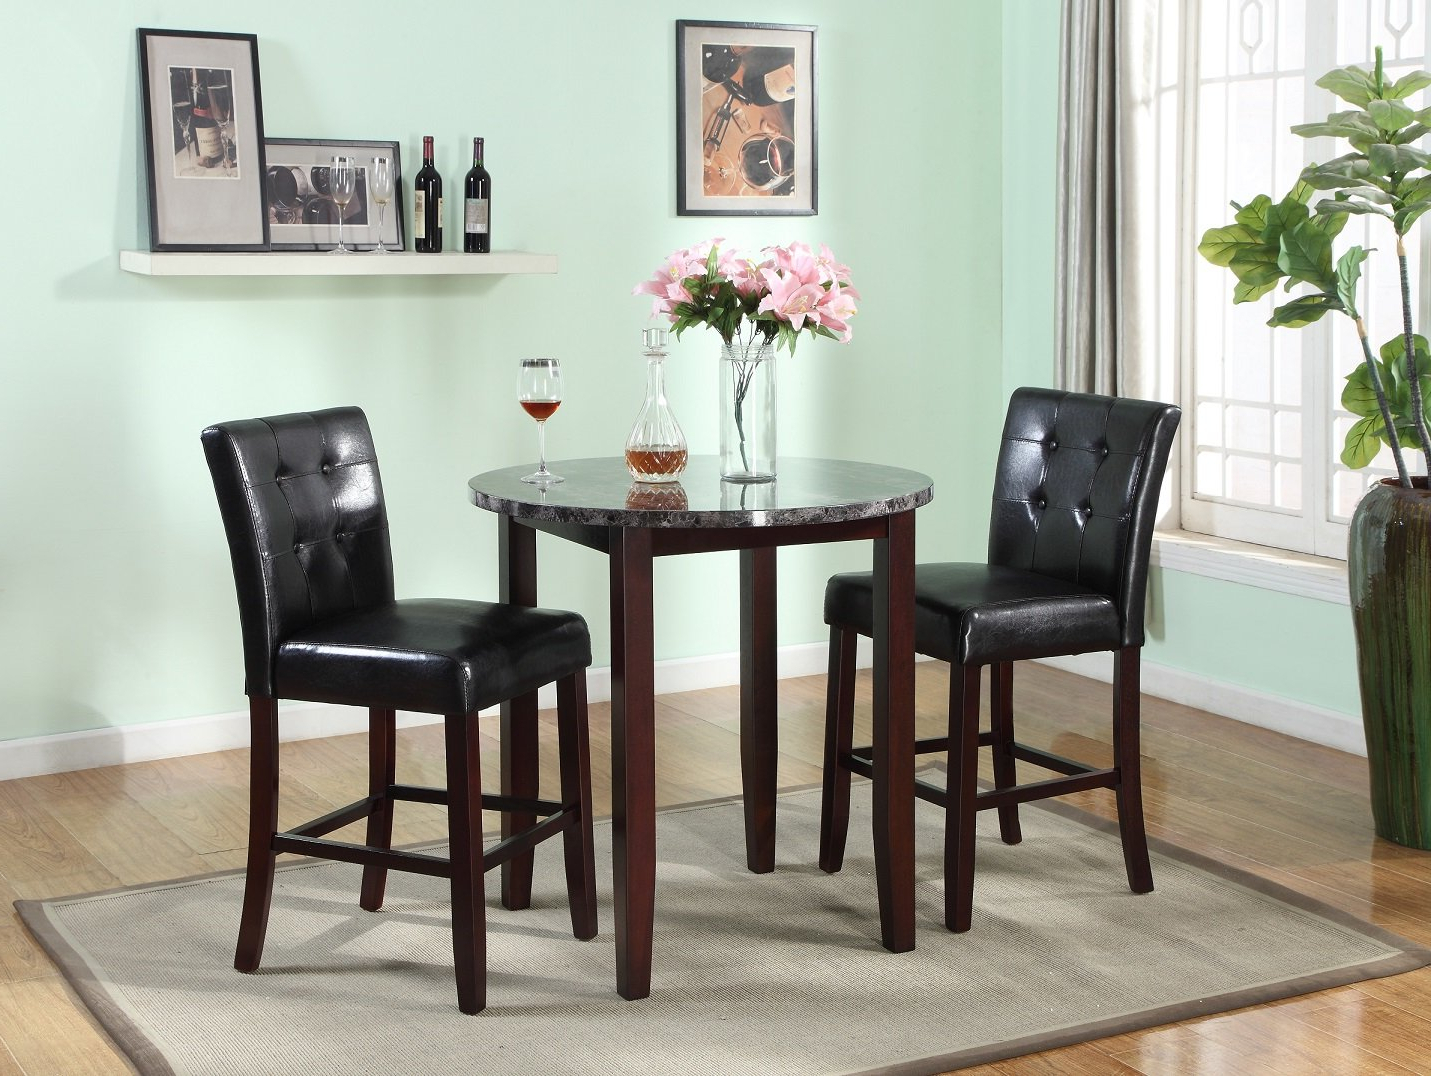 Mizpah 3 Piece Counter Height Dining Sets Intended For Widely Used Red Barrel Studio Janmarie 3 Piece Counter Height Dining Set (View 5 of 25)